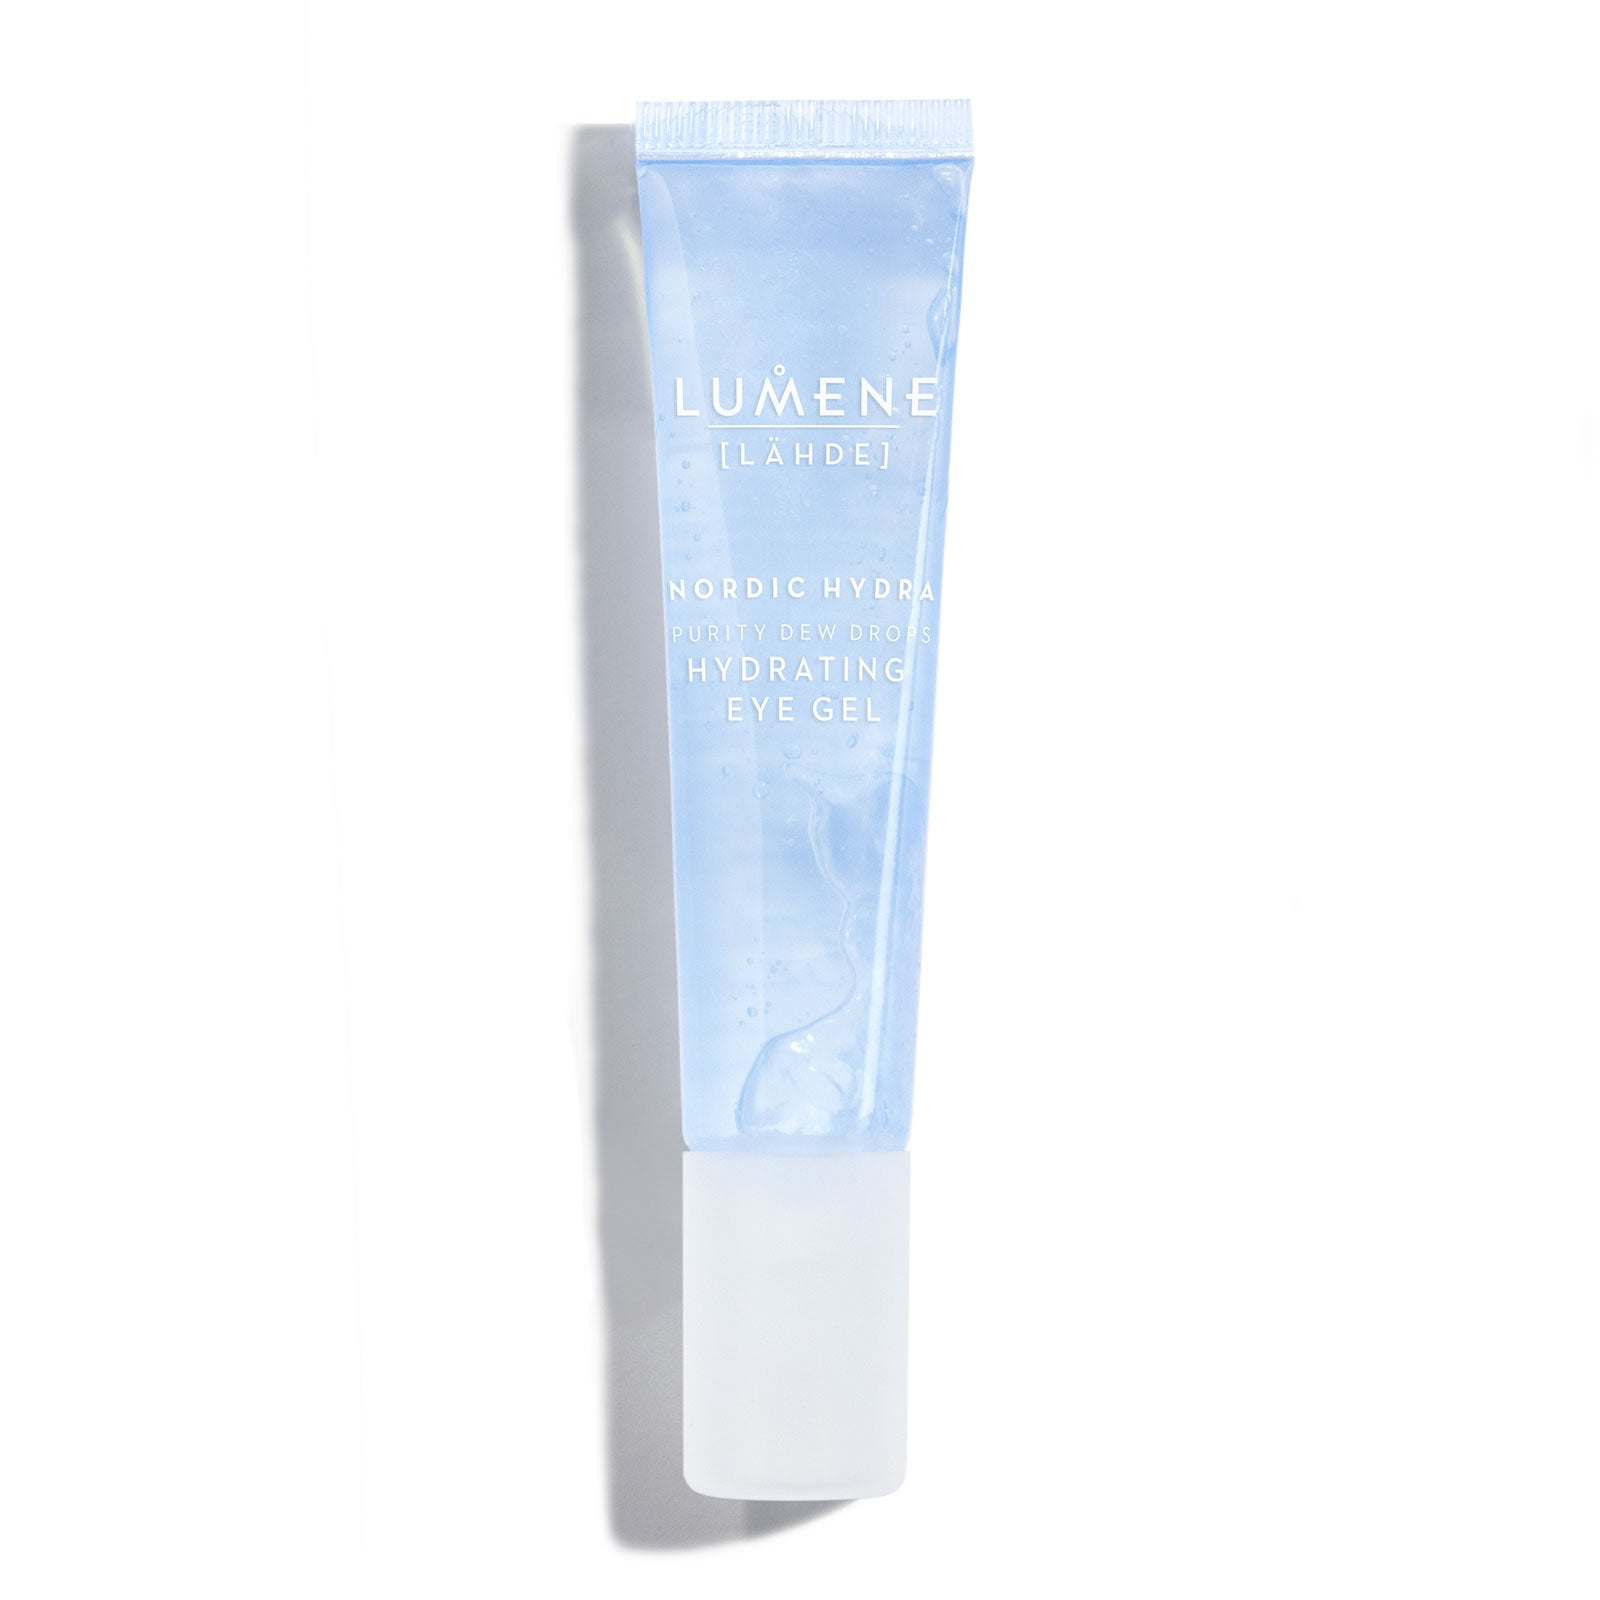 Lumene Nordic Hydra [Lähde] Purity Dew Drops Hydrating Eye Gel 15ml